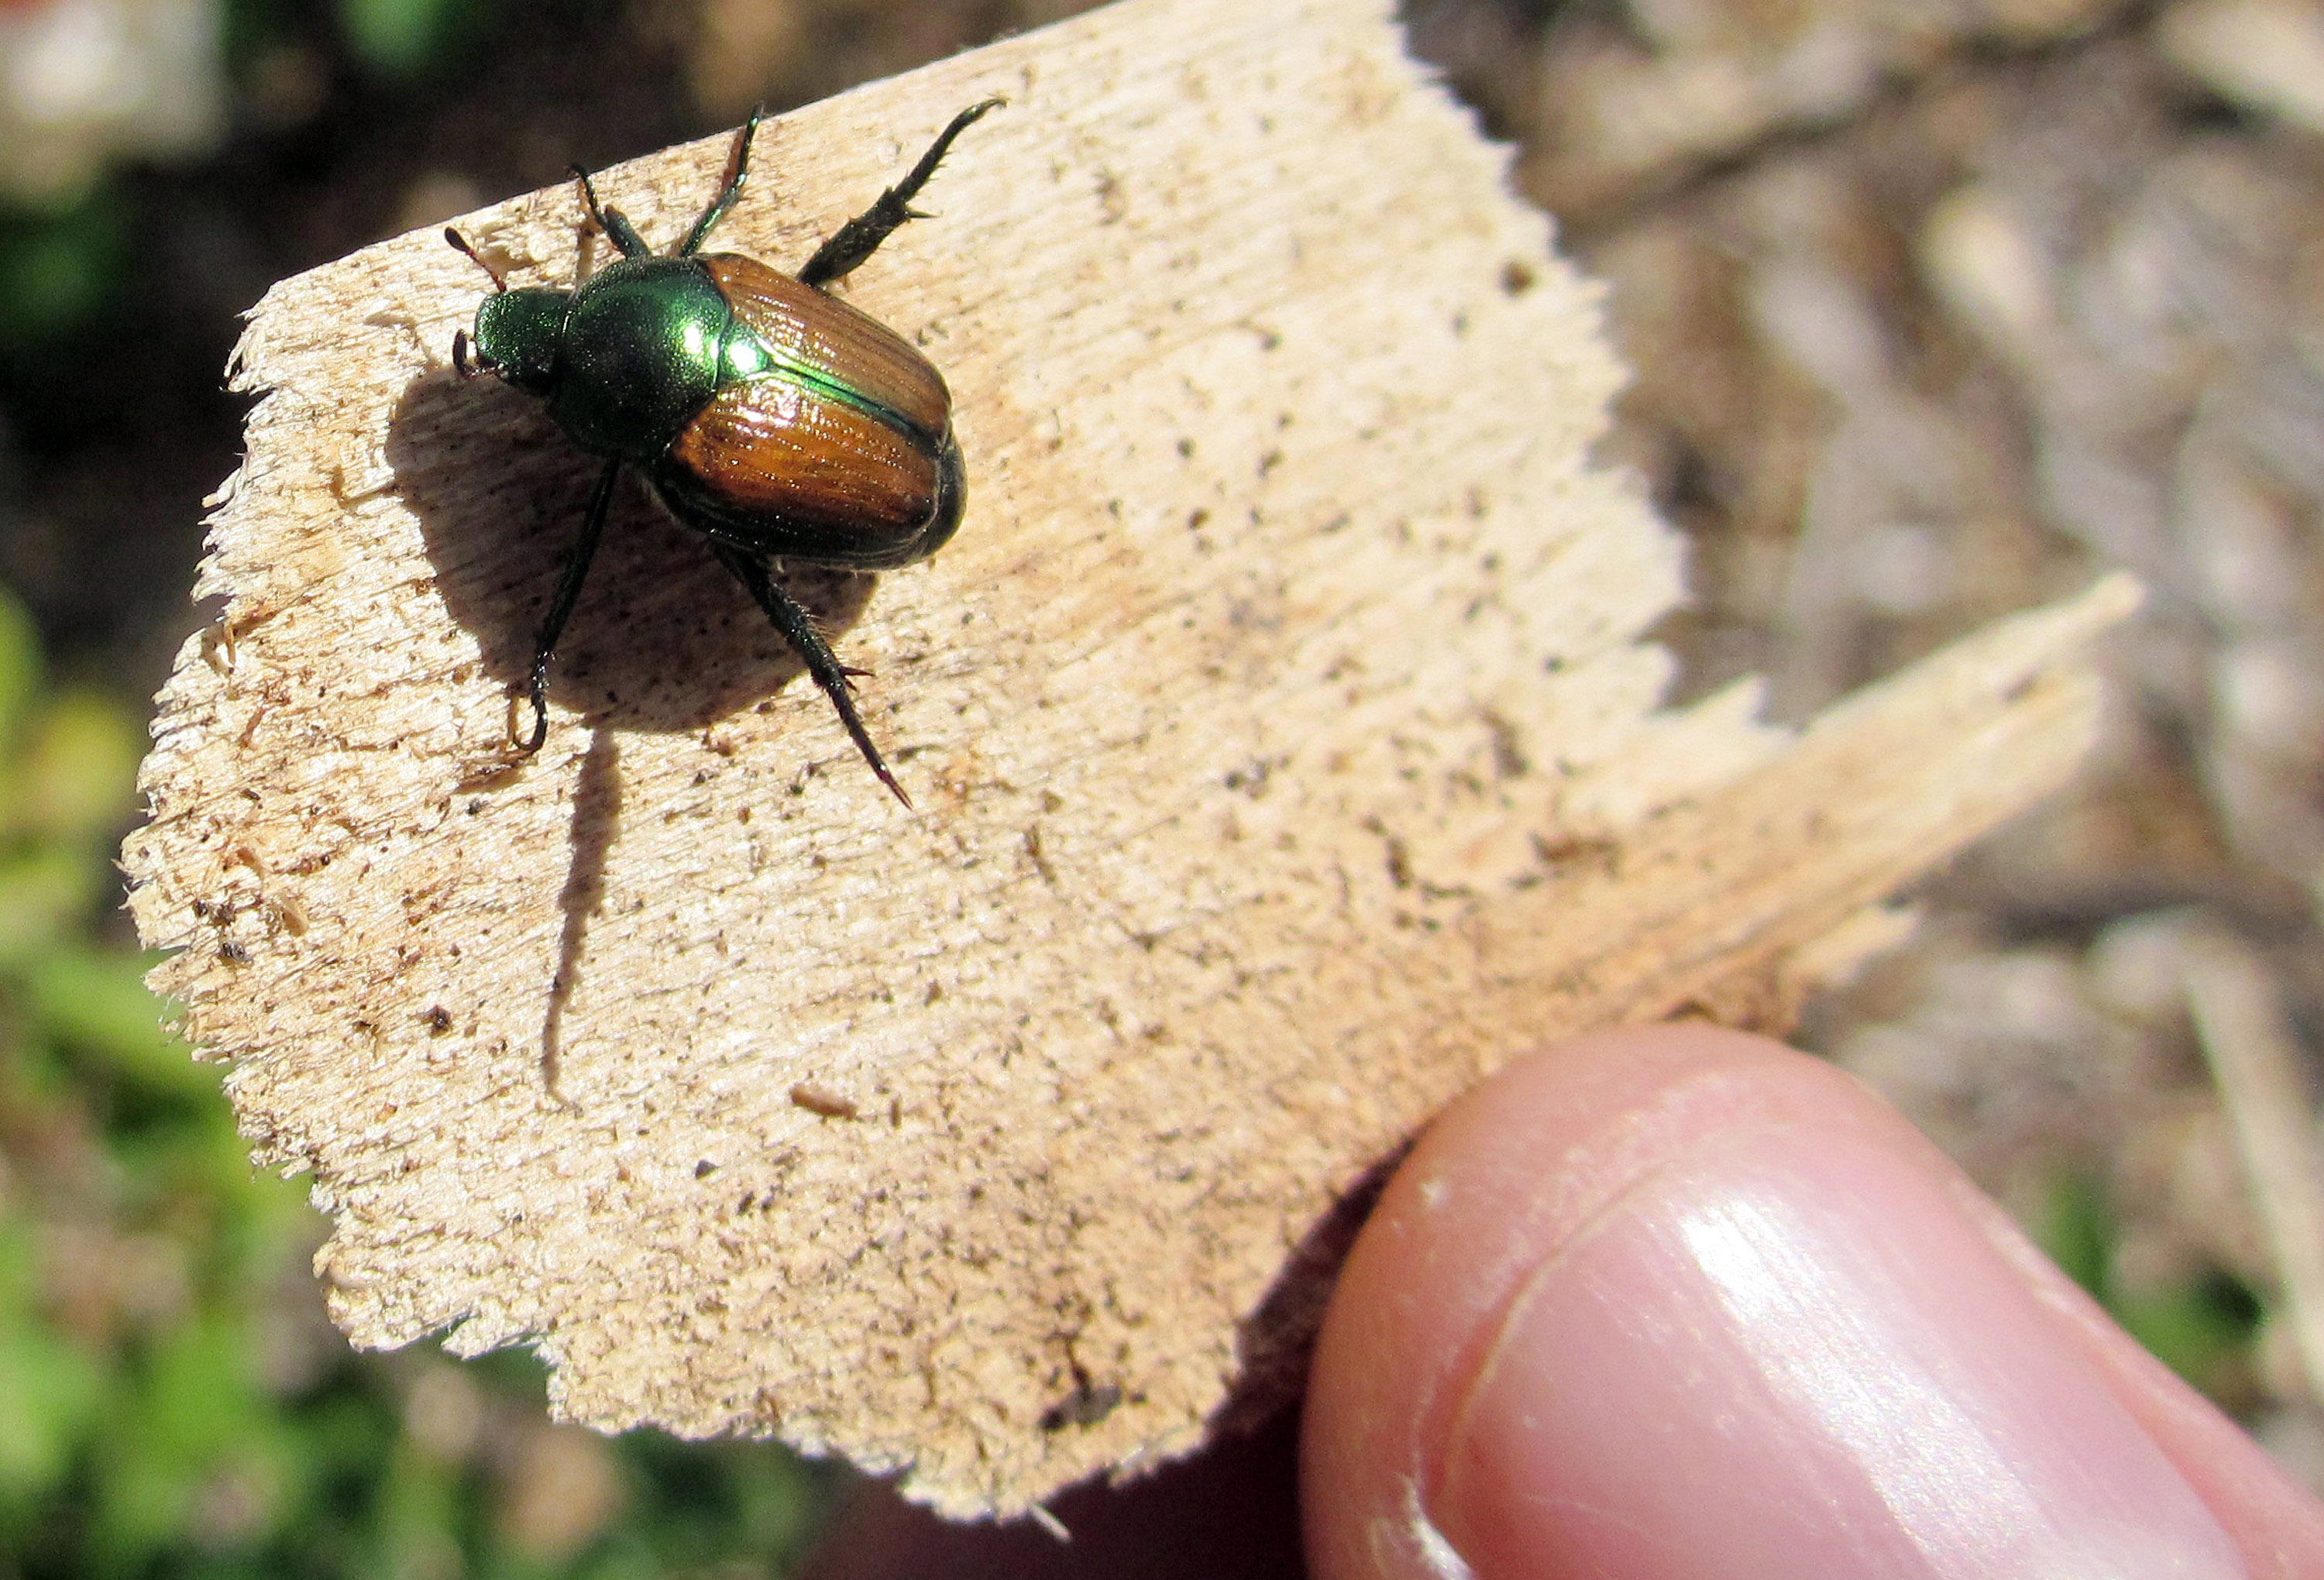 Attack of the Japanese beetles: Eradicating them the safe and easy way